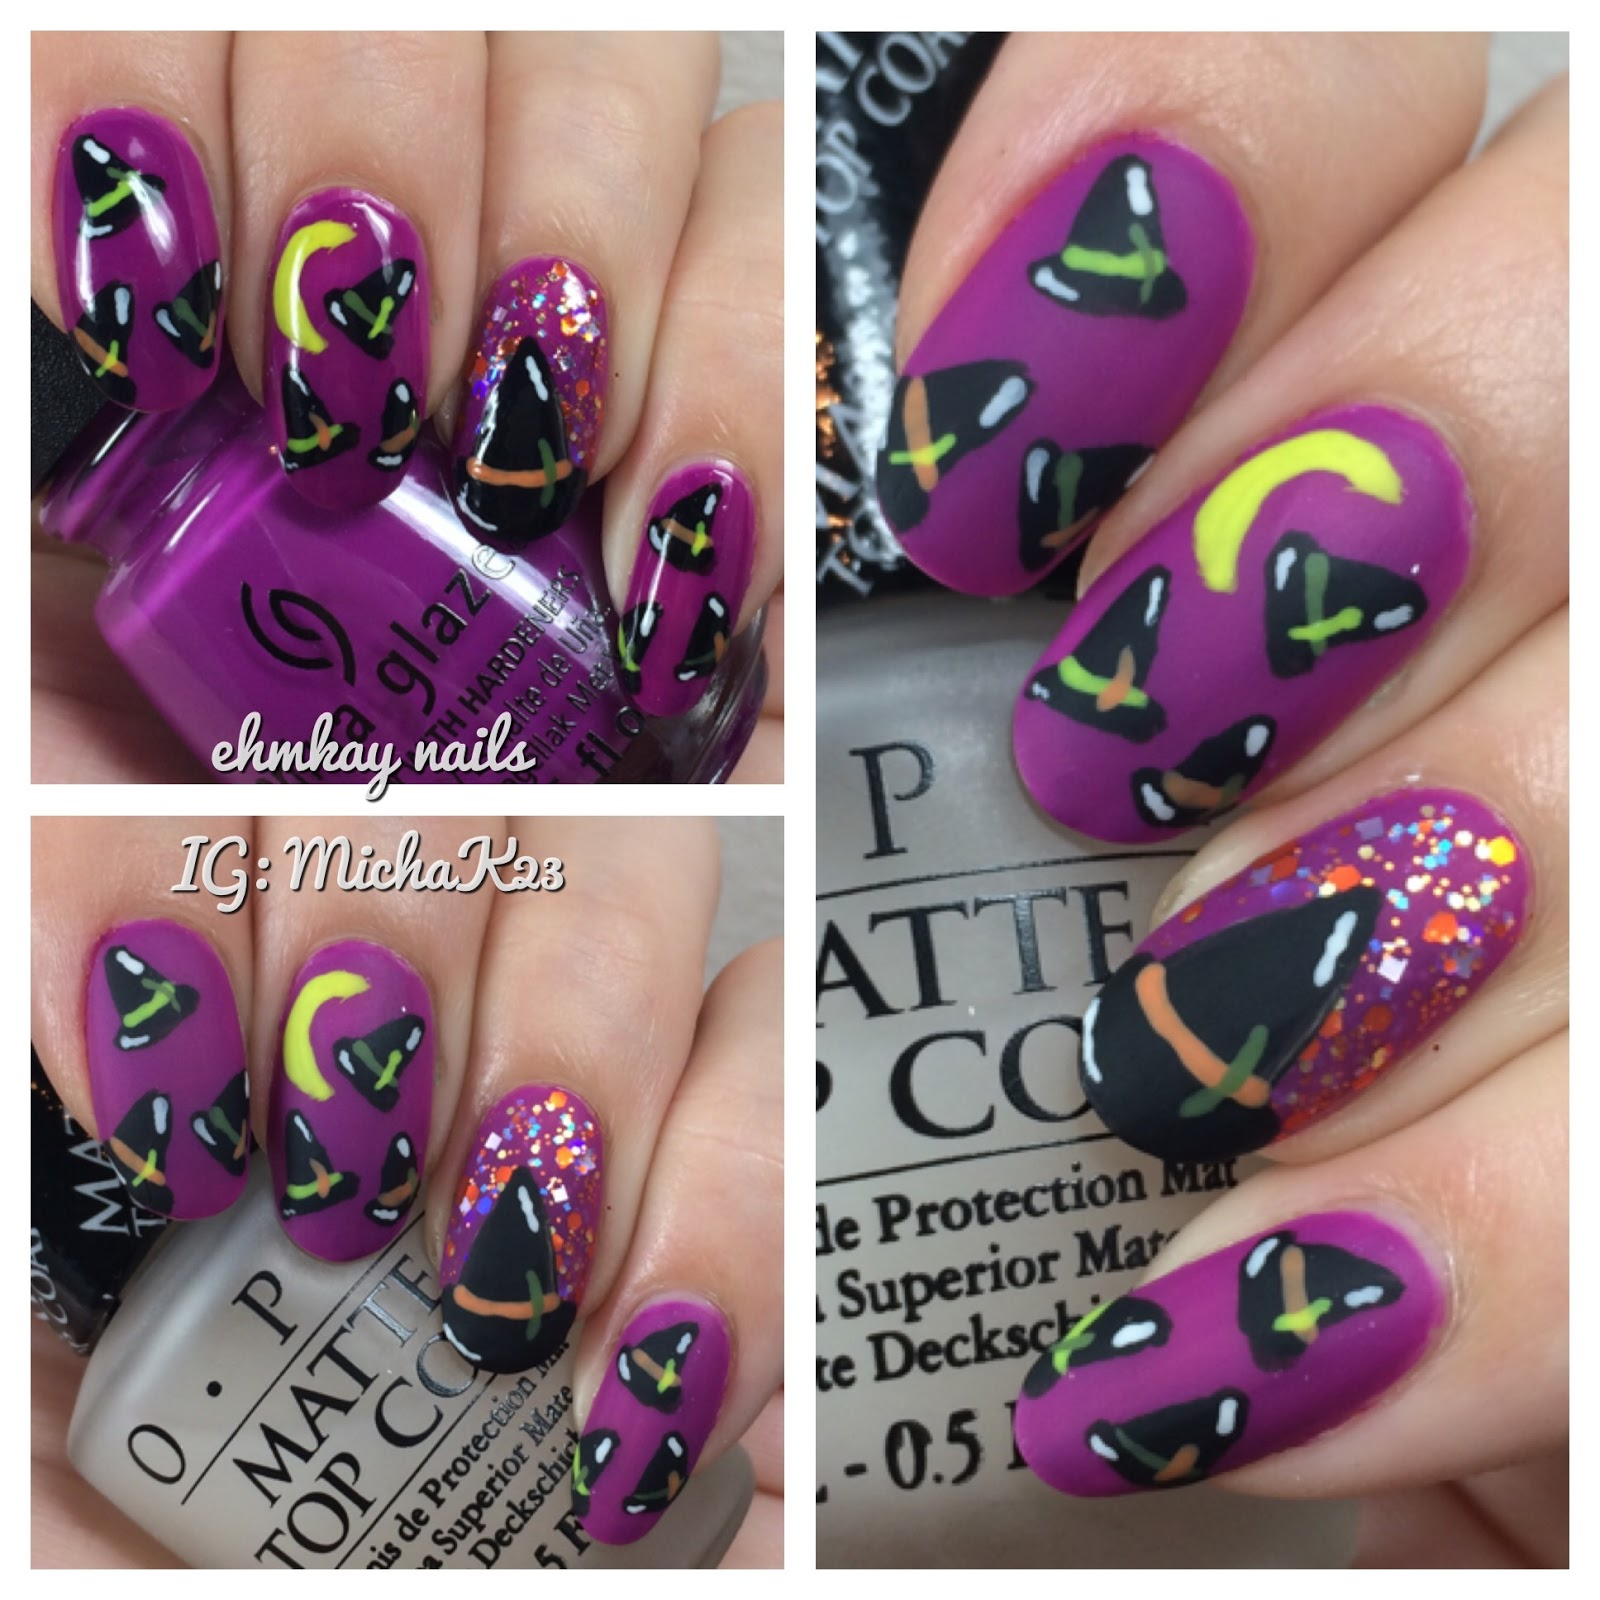 ehmkay nails: Witch Hats Halloween Nail Art